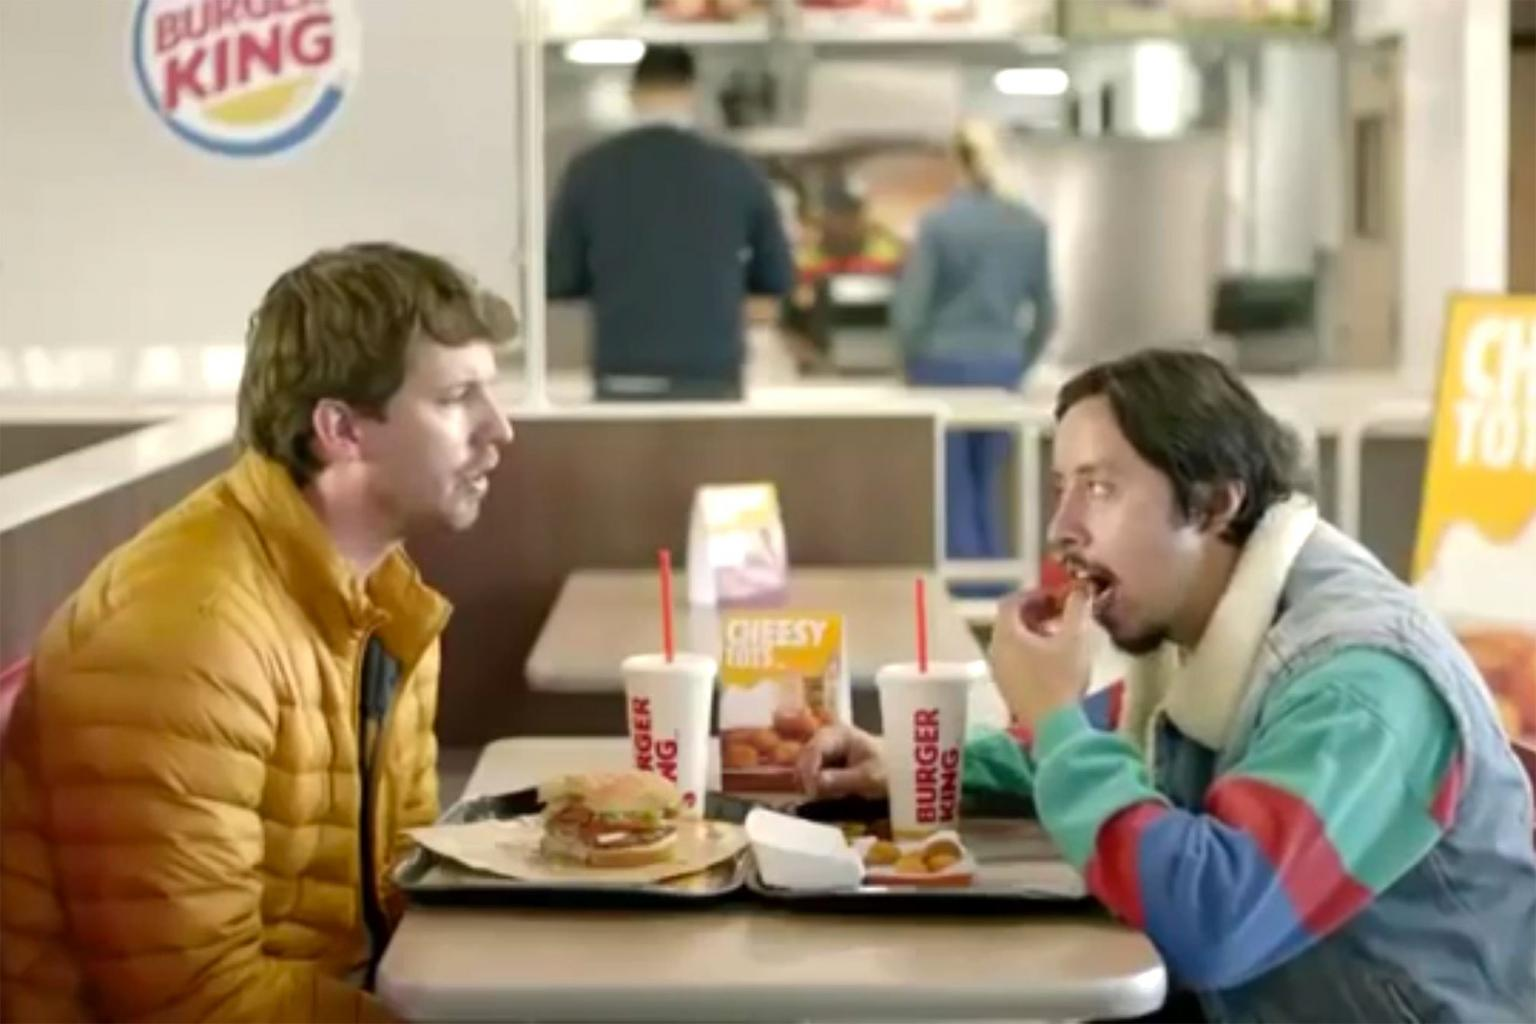 You Gonna Eat Your Tots? Burger King Recreated Your Favorite Napoleon Dynamite Scene